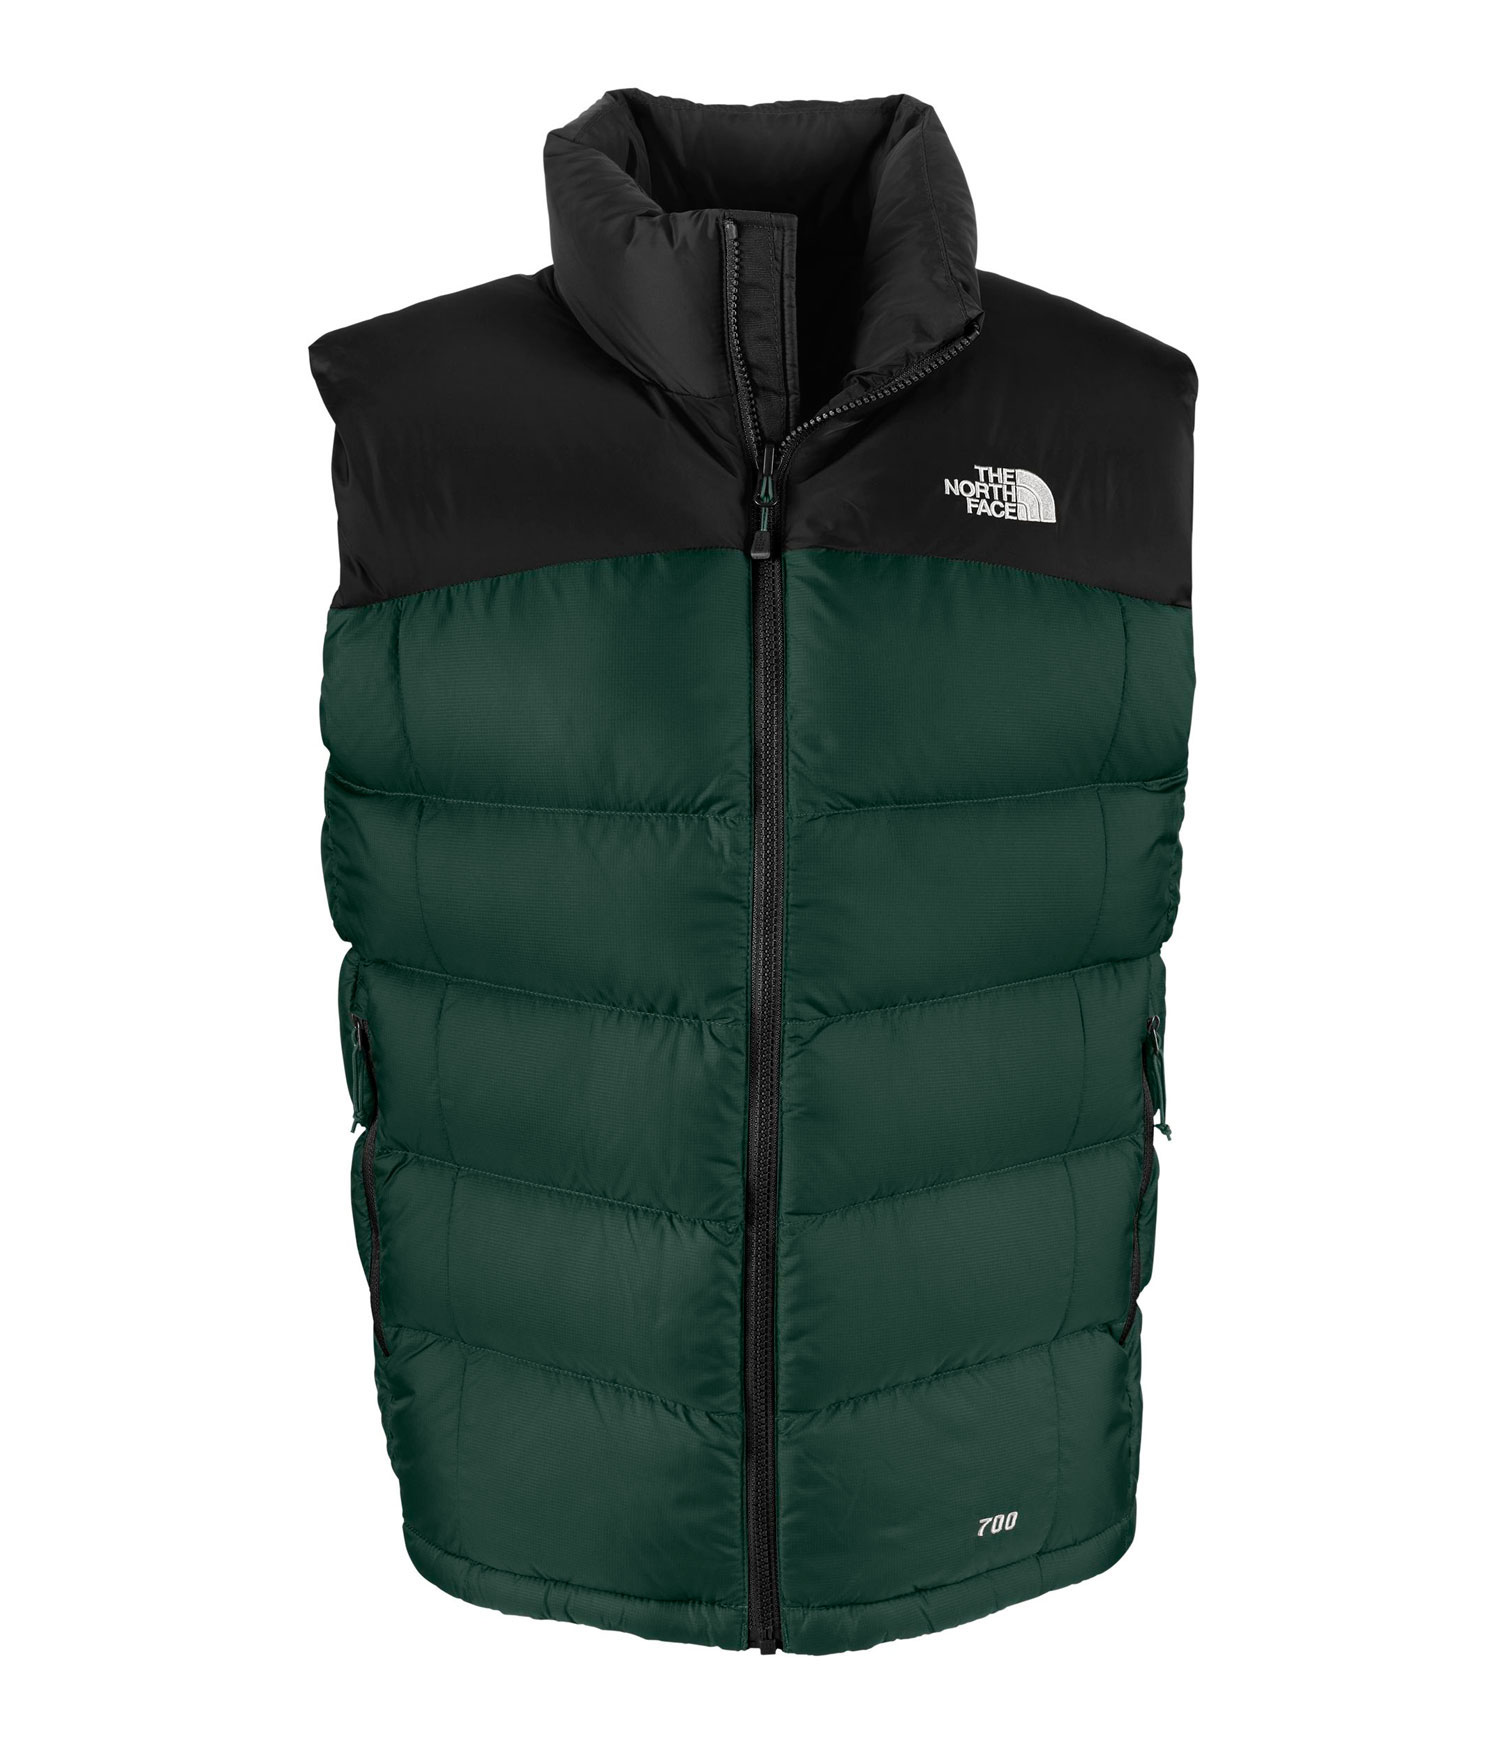 "Key Features of The North Face Neptse 2 Vest: Avg Weight: 500 g (17.64 oz) Center Back: 27"" Fabric: body: 50D 64 g/m2 (1.9 oz/yd2) mini-ripstop weave nylon abrasion: 50D 64 g/m2 (1.9 oz/yd2) plain weave nylon with DWR insulation: 700 fill goose down Sleeveless version of the classic, high loft down jacket that delivers plush warmth in harsh cold. Standard fit Zip-in compatible Double-layer taffeta on shoulders Stows in hand pocket Two hand pockets Hem cinch-cord - $111.95"